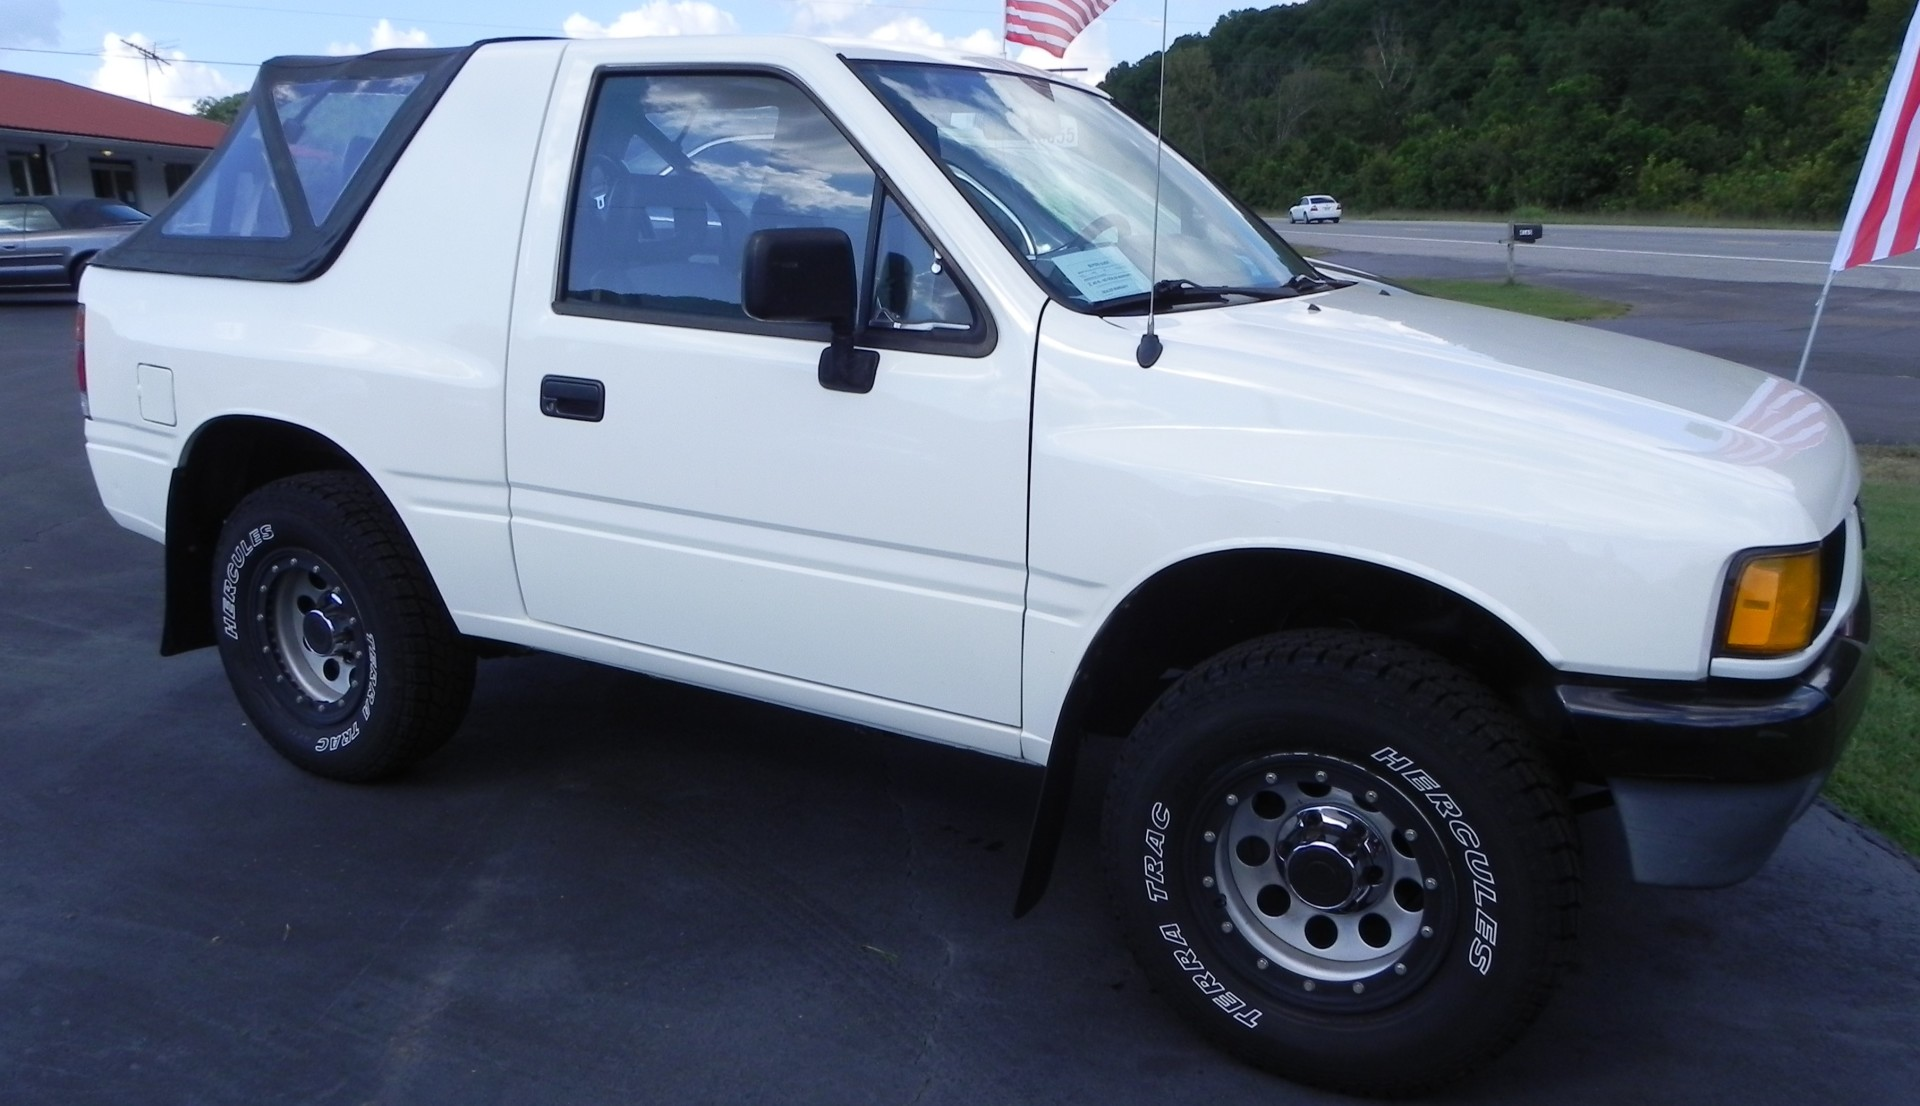 *PRICE DROP* 1993 Isuzu Amigo